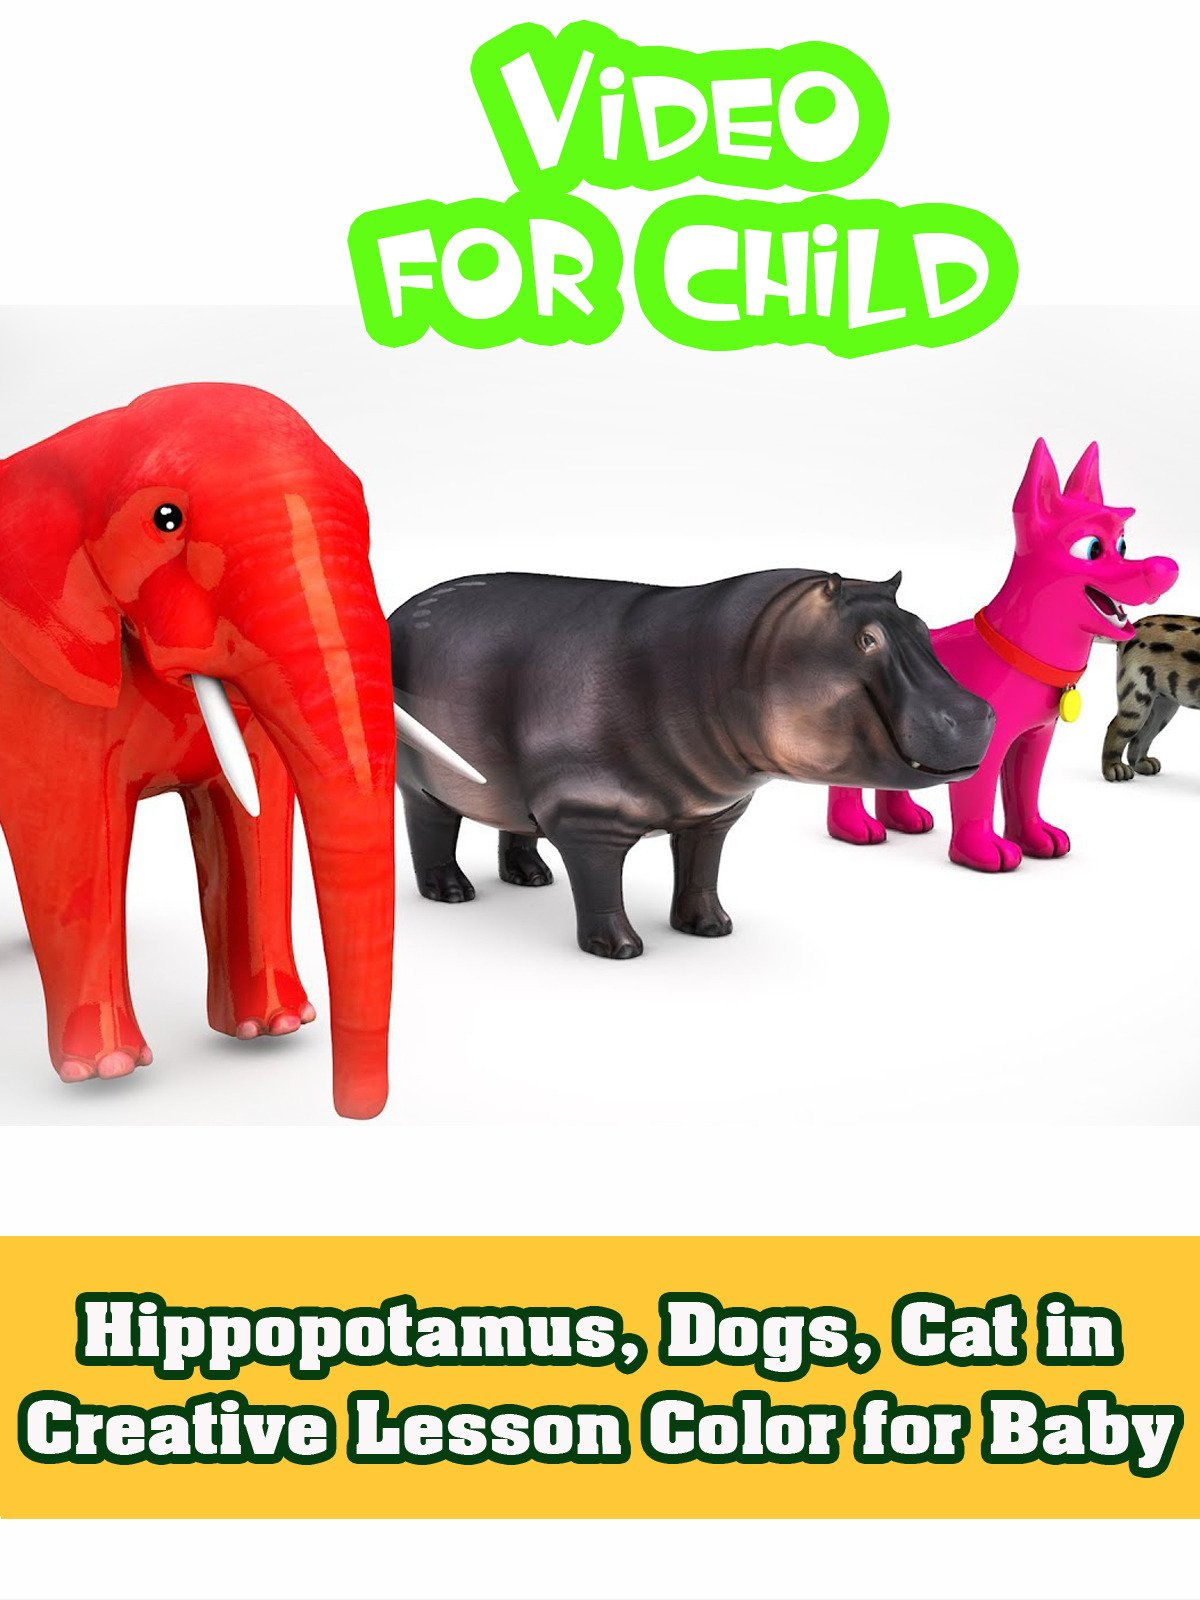 Hippopotamus, Dogs, Cat in Creative Lesson Color for Baby